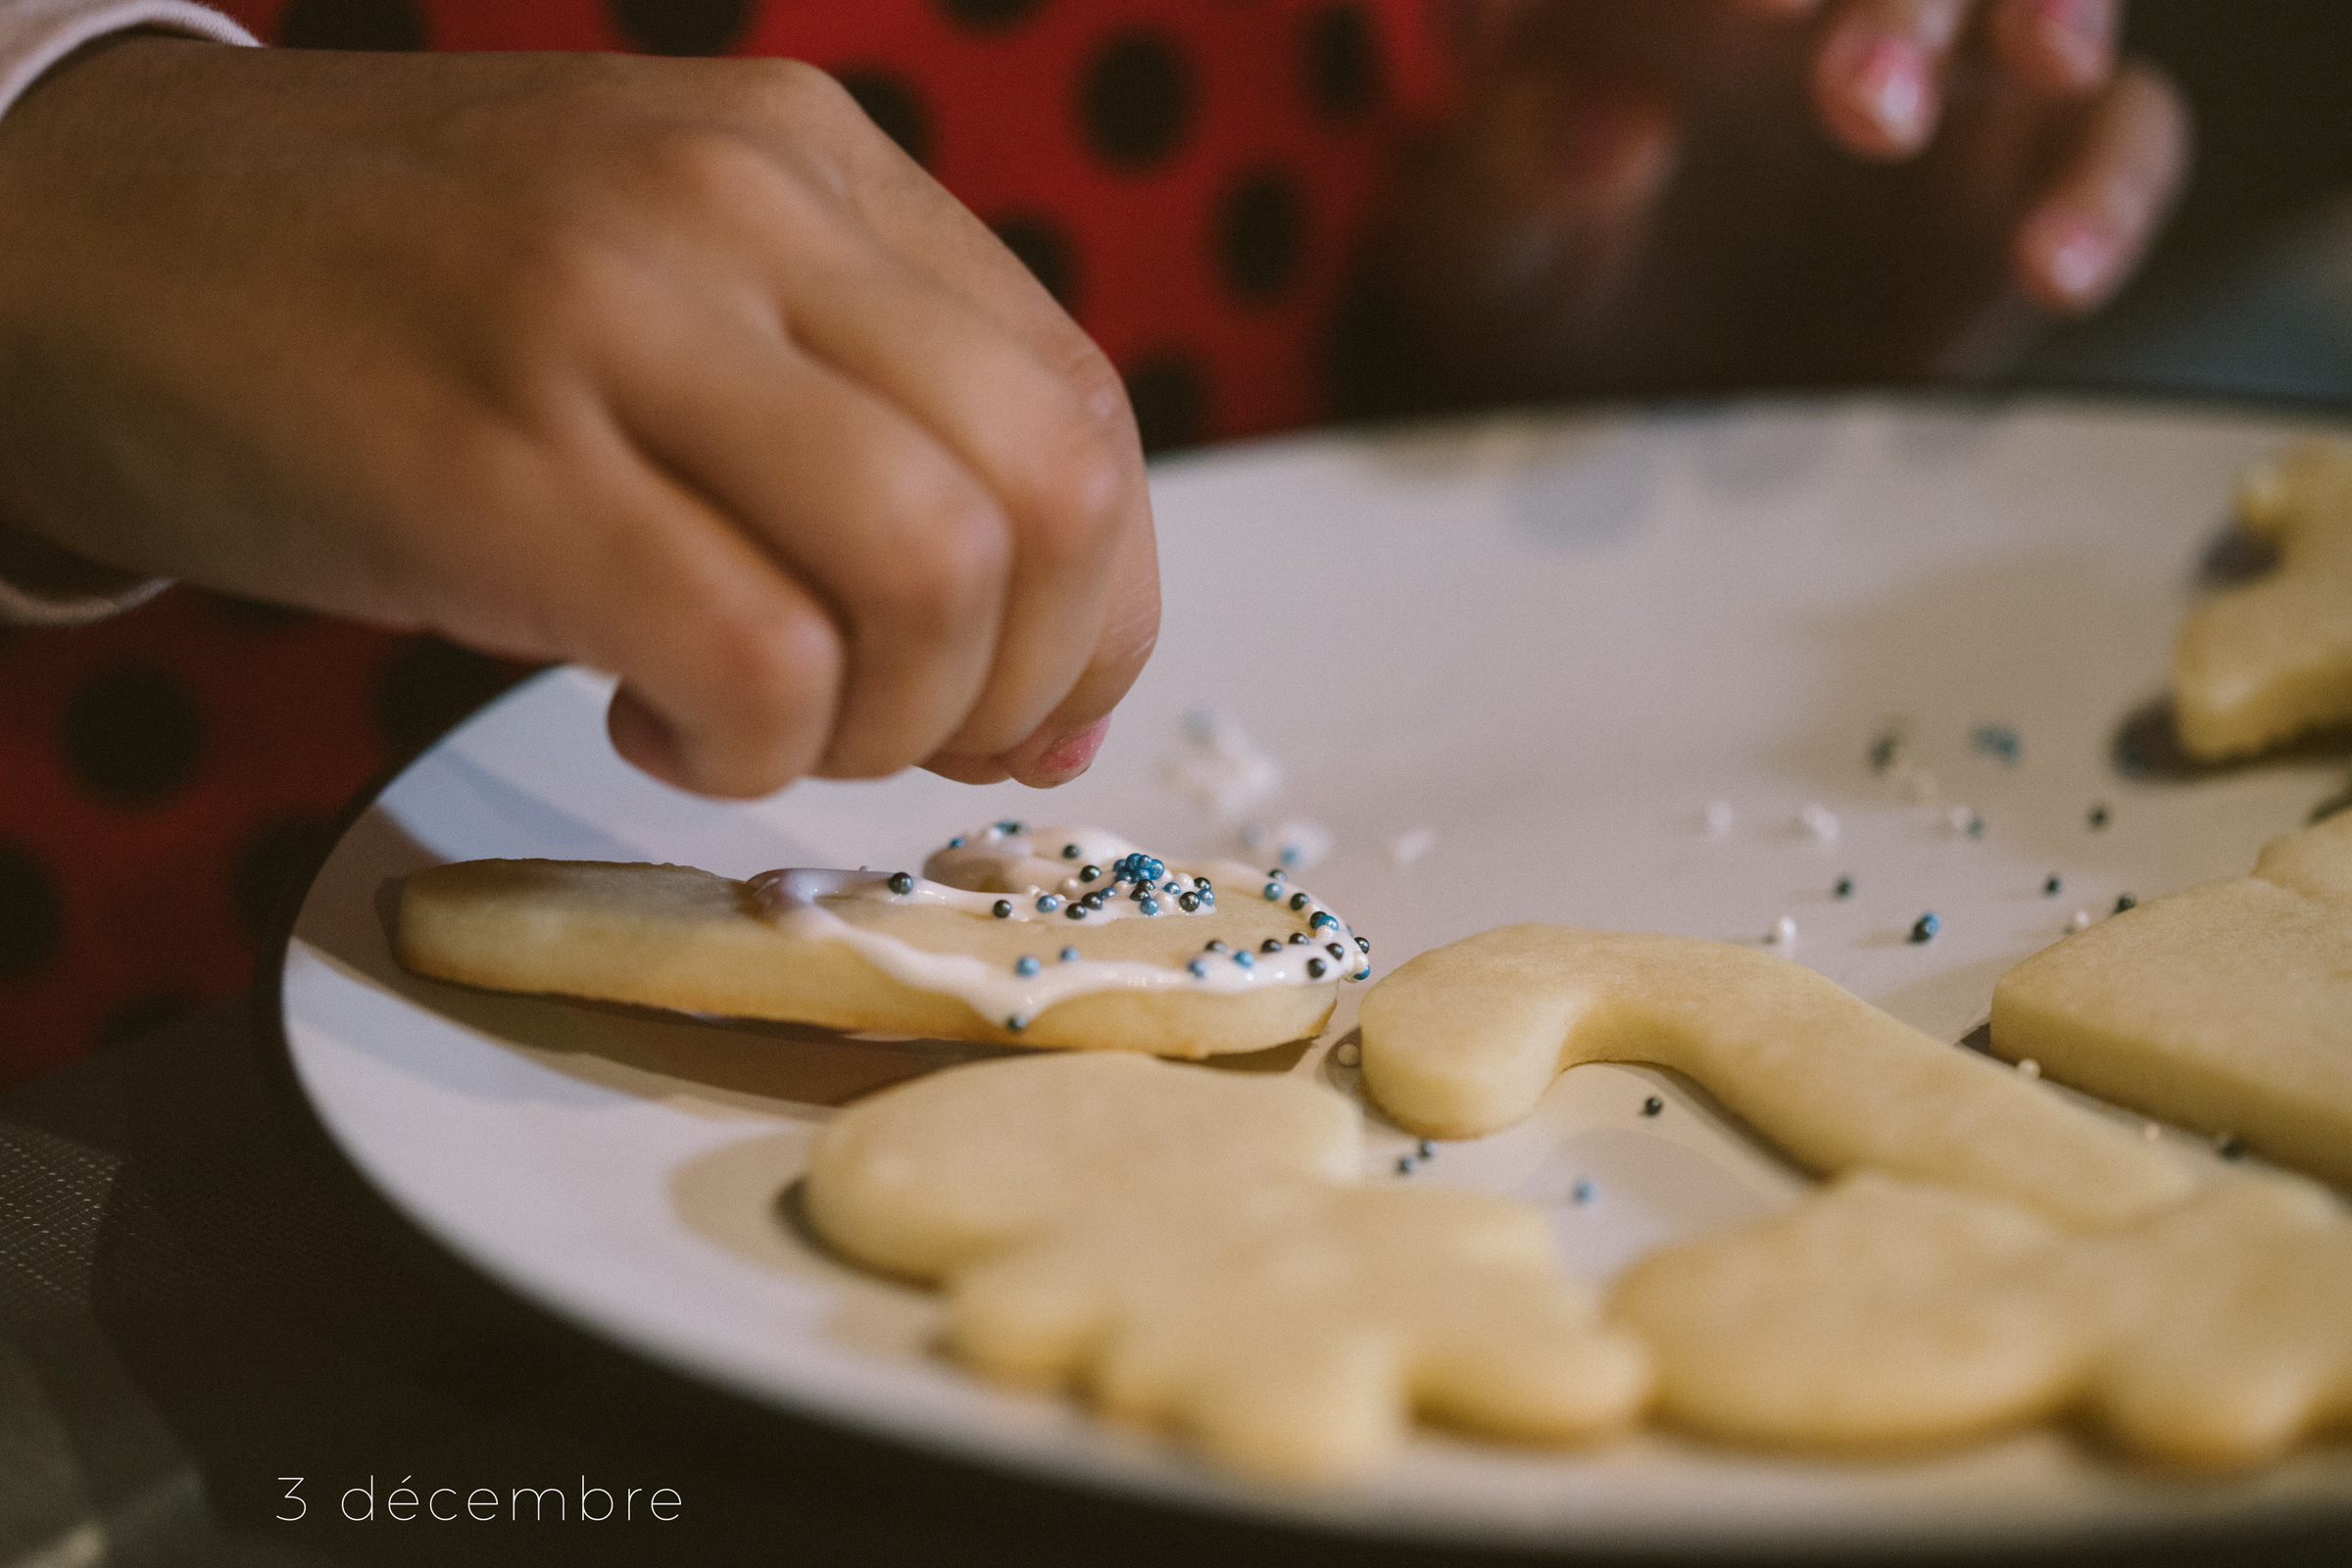 The best part of making cookies is decorating them